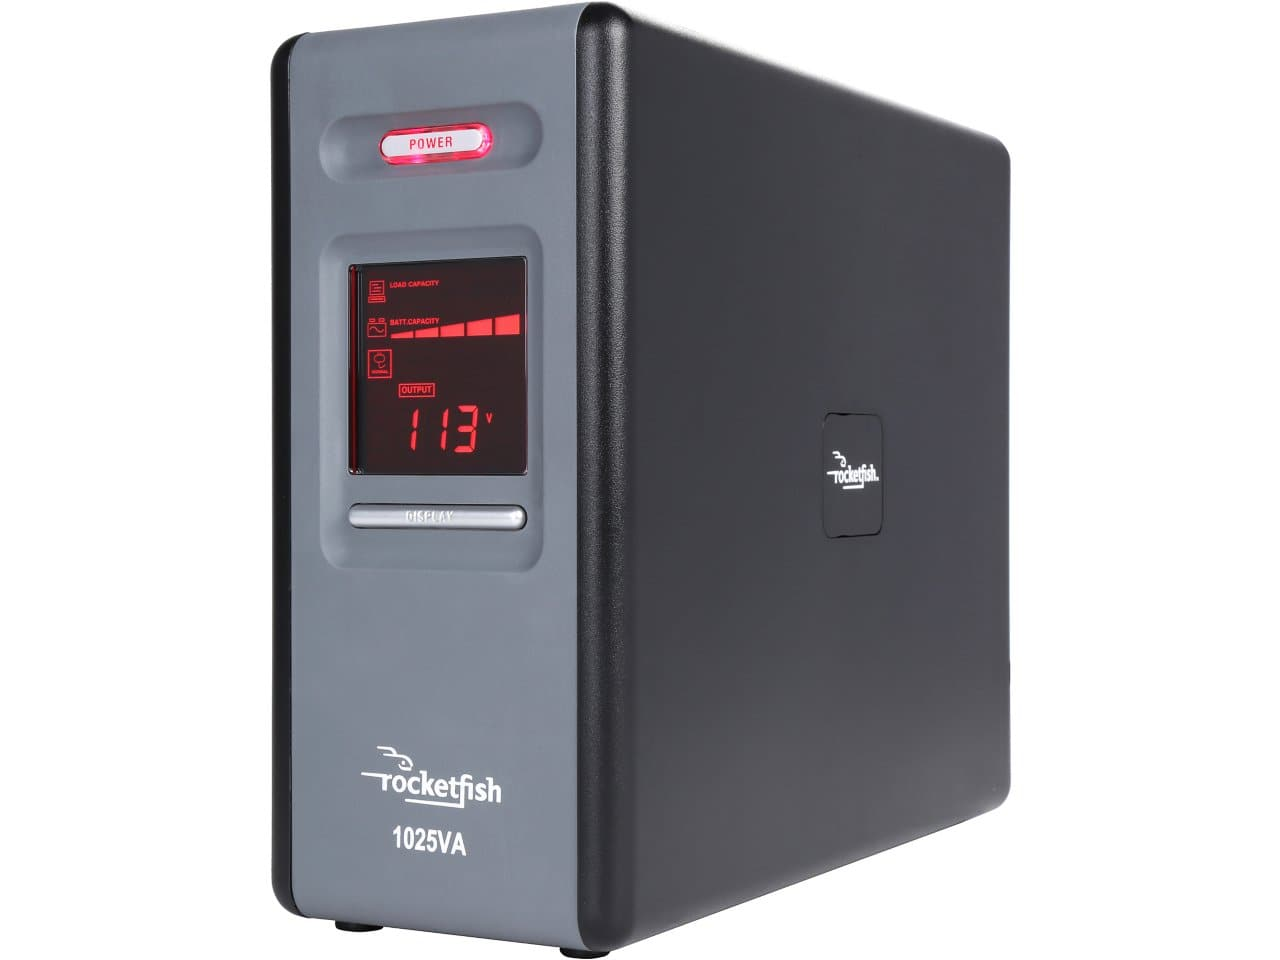 CyberPower Rocketfish 1025 VA (600 Watts) 8-Outlets Simulated Sine Wave Mini-Tower UPS with LCD Display (RF-1025A) for $76.99 + Free Shipping @ Newegg.com